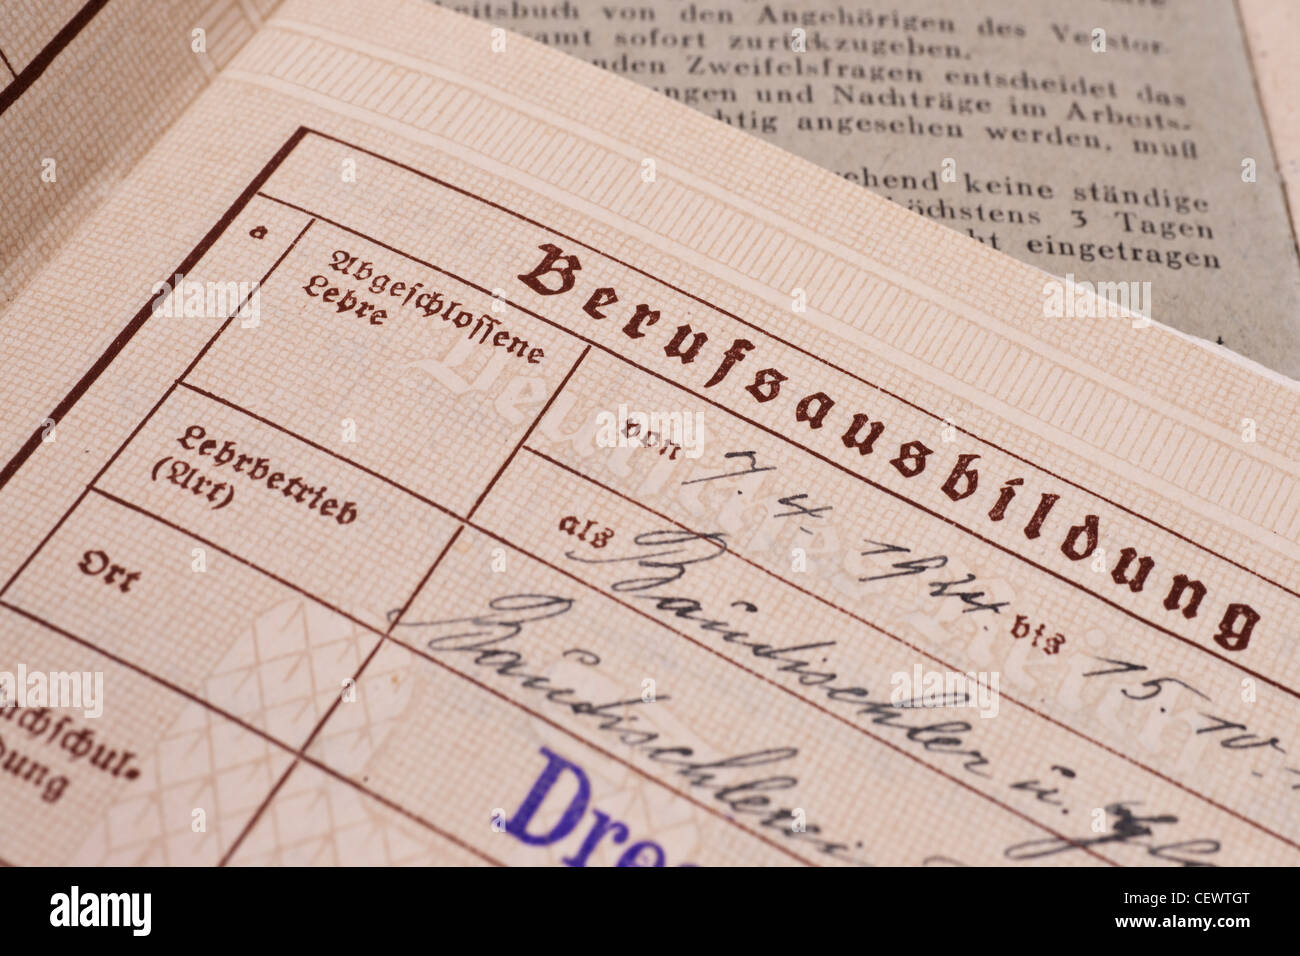 Excercise Book of the German Reich from 1935/1936, page apprenticeship - Stock Image